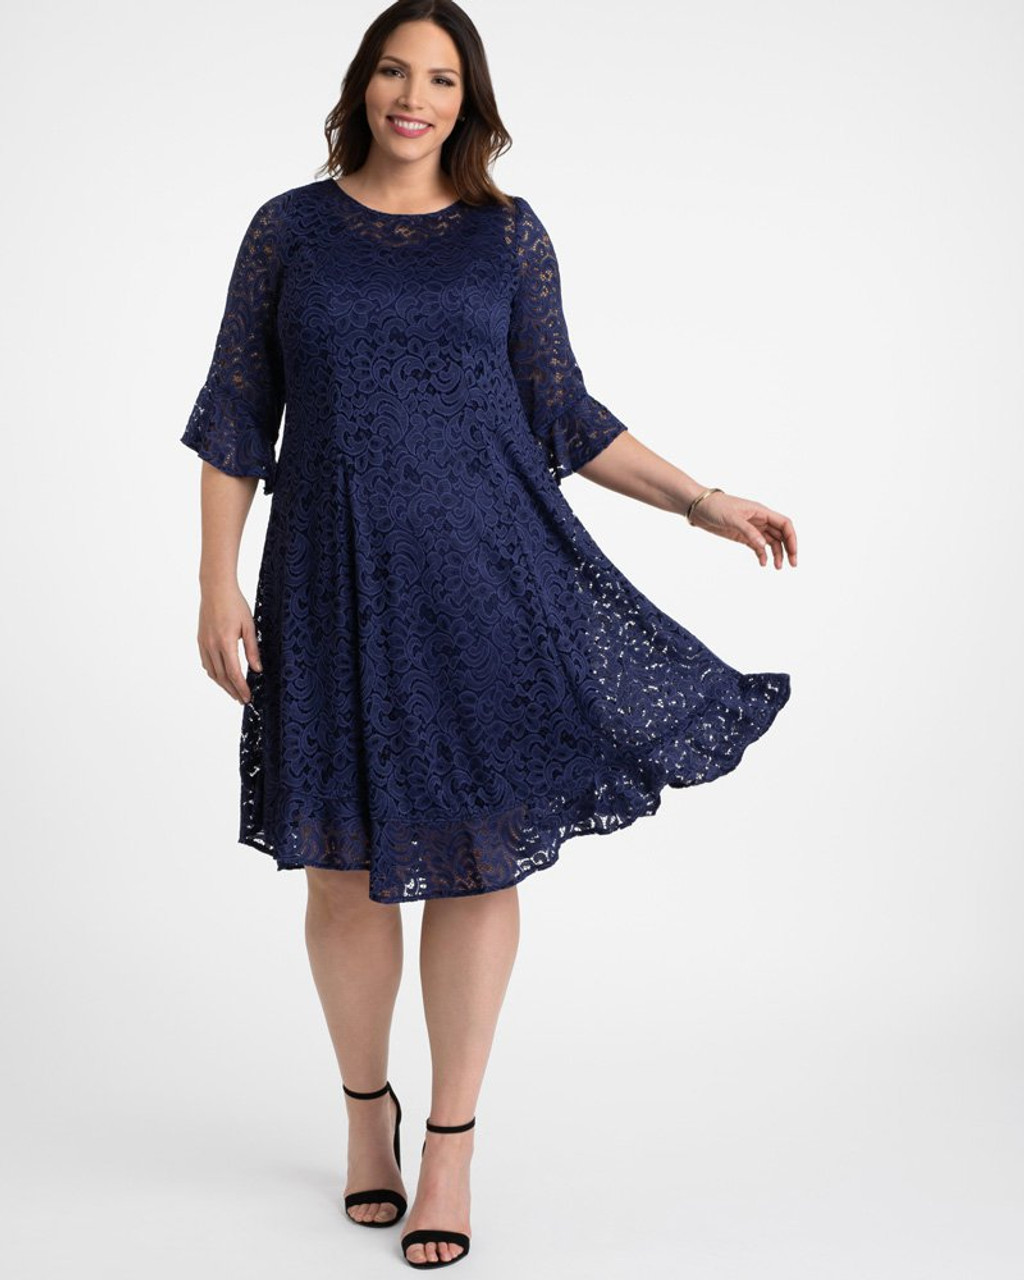 Kiyonna Women\'s Plus Size Livi Lace Dress~Blue/Navy*14170903